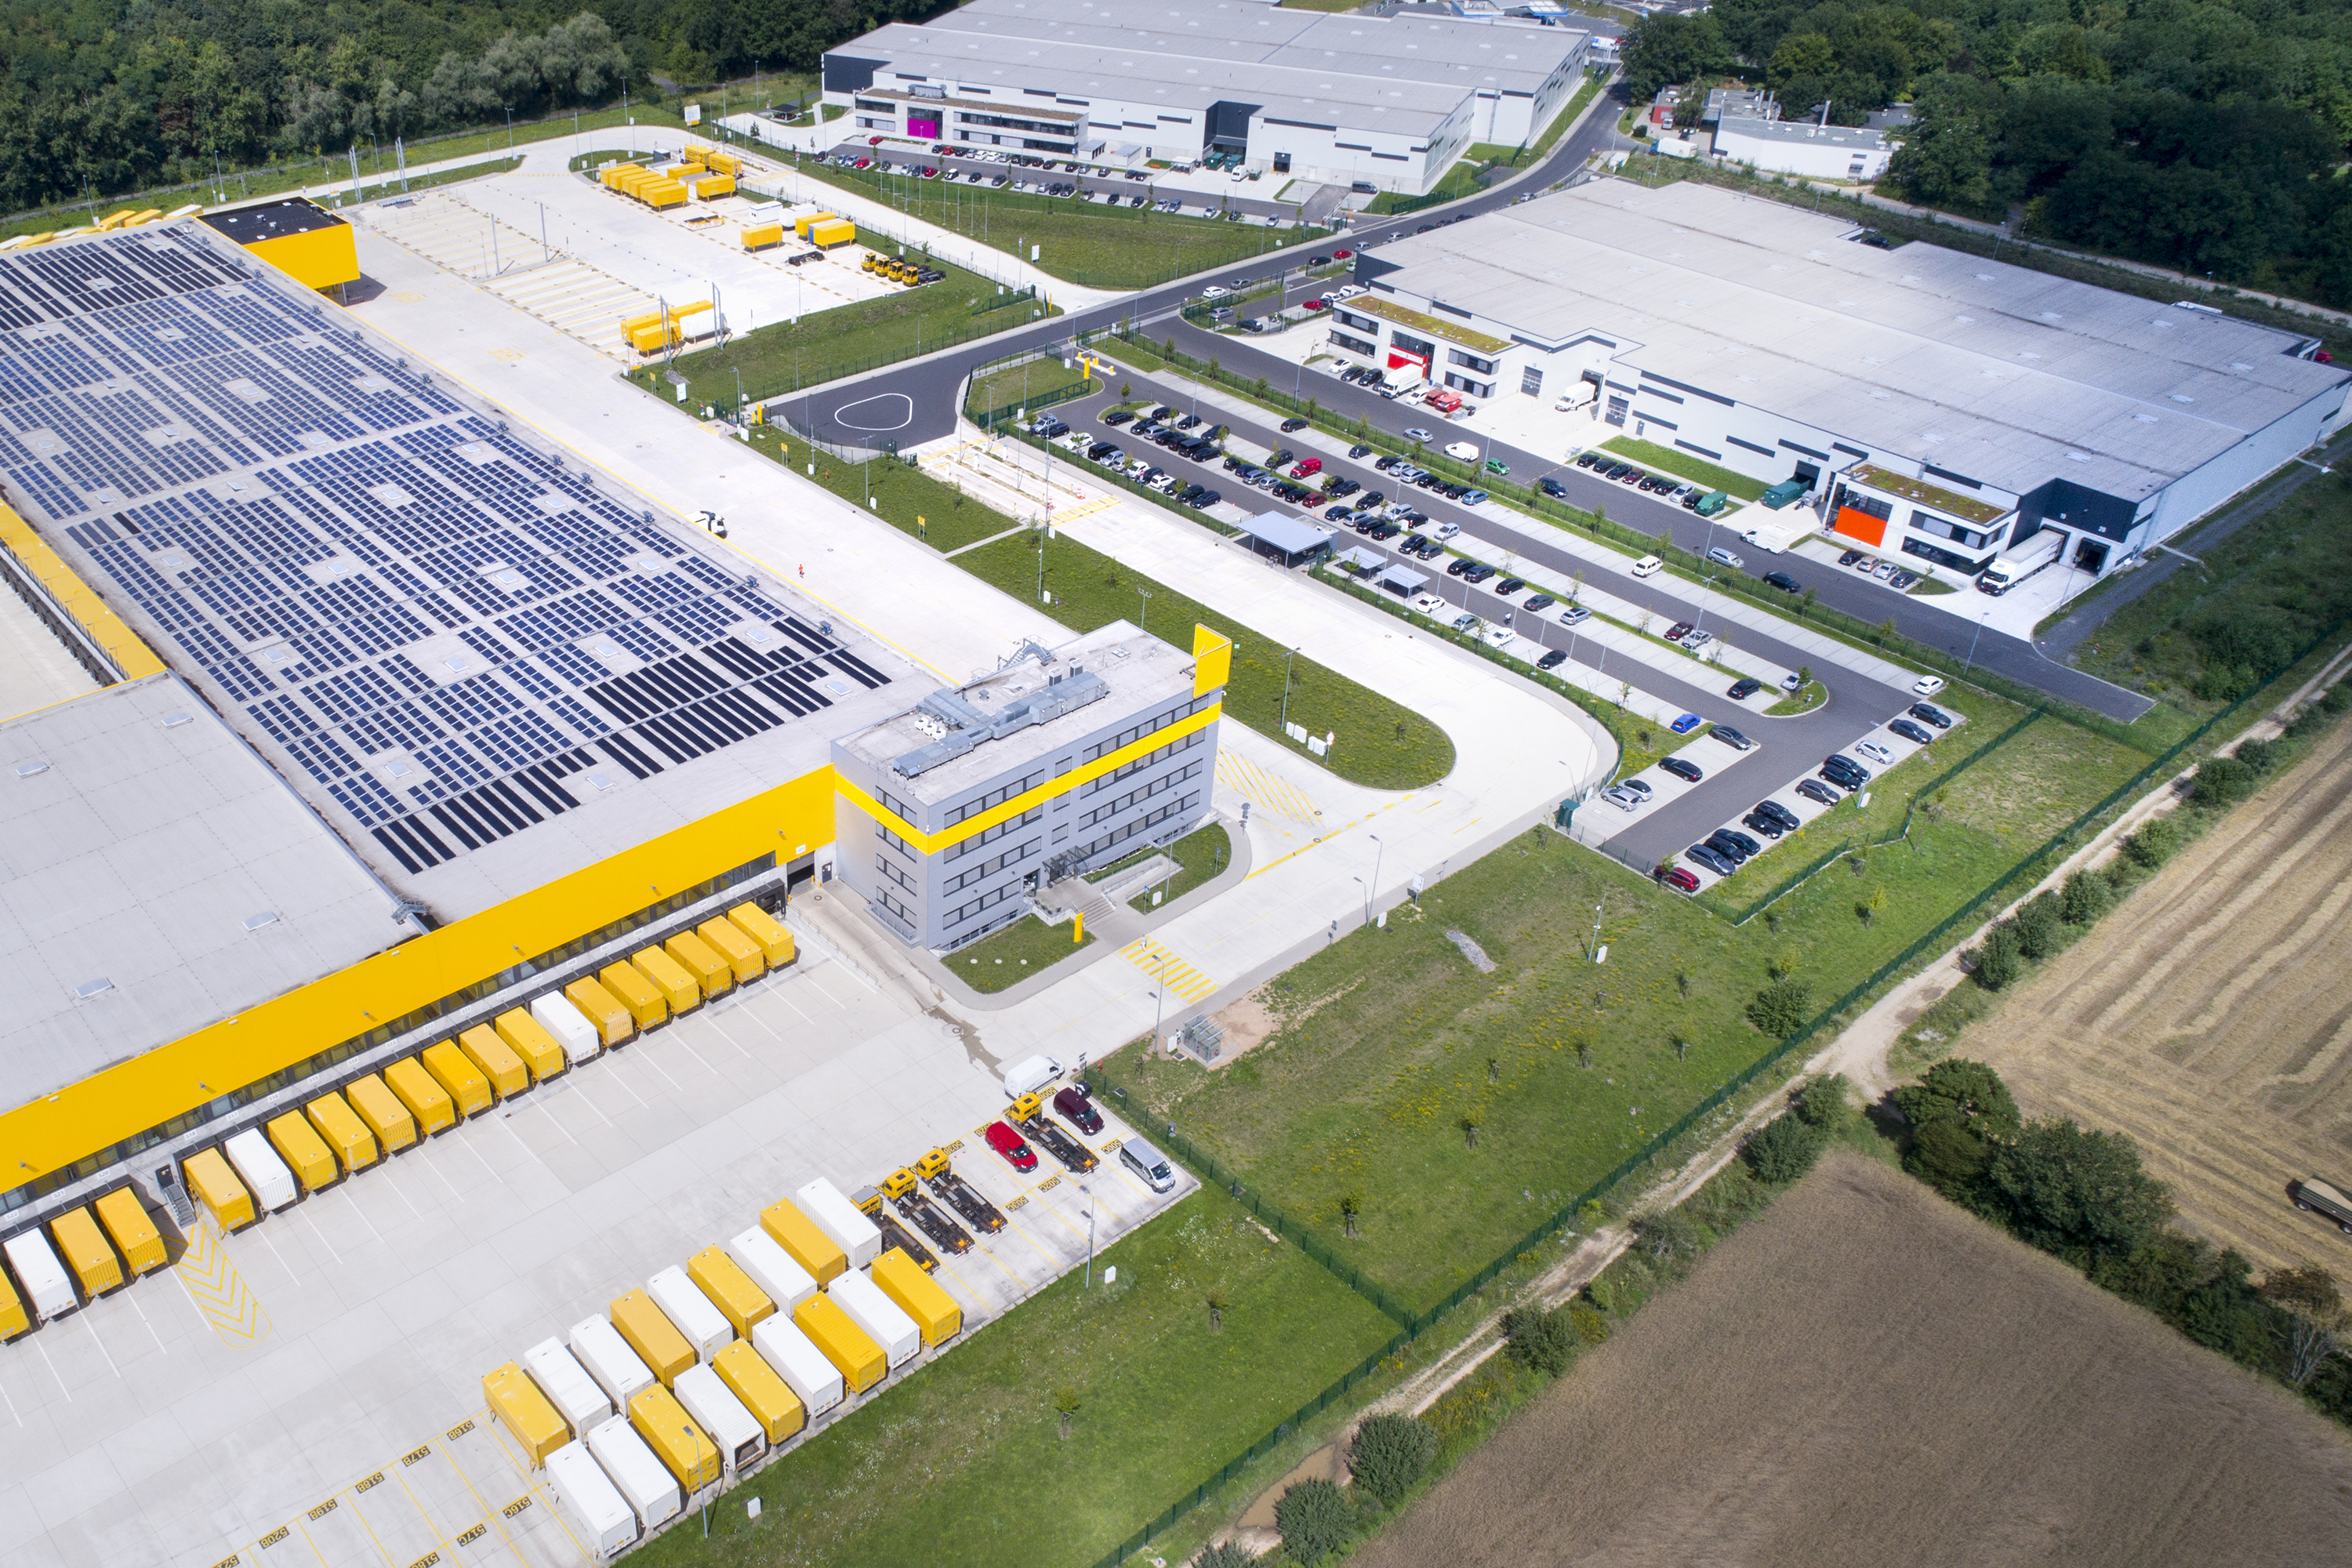 Growth of Mega Distribution Centers accelerates in Germany, the Netherlands and Belgium – efficiency and e-commerce are main drivers